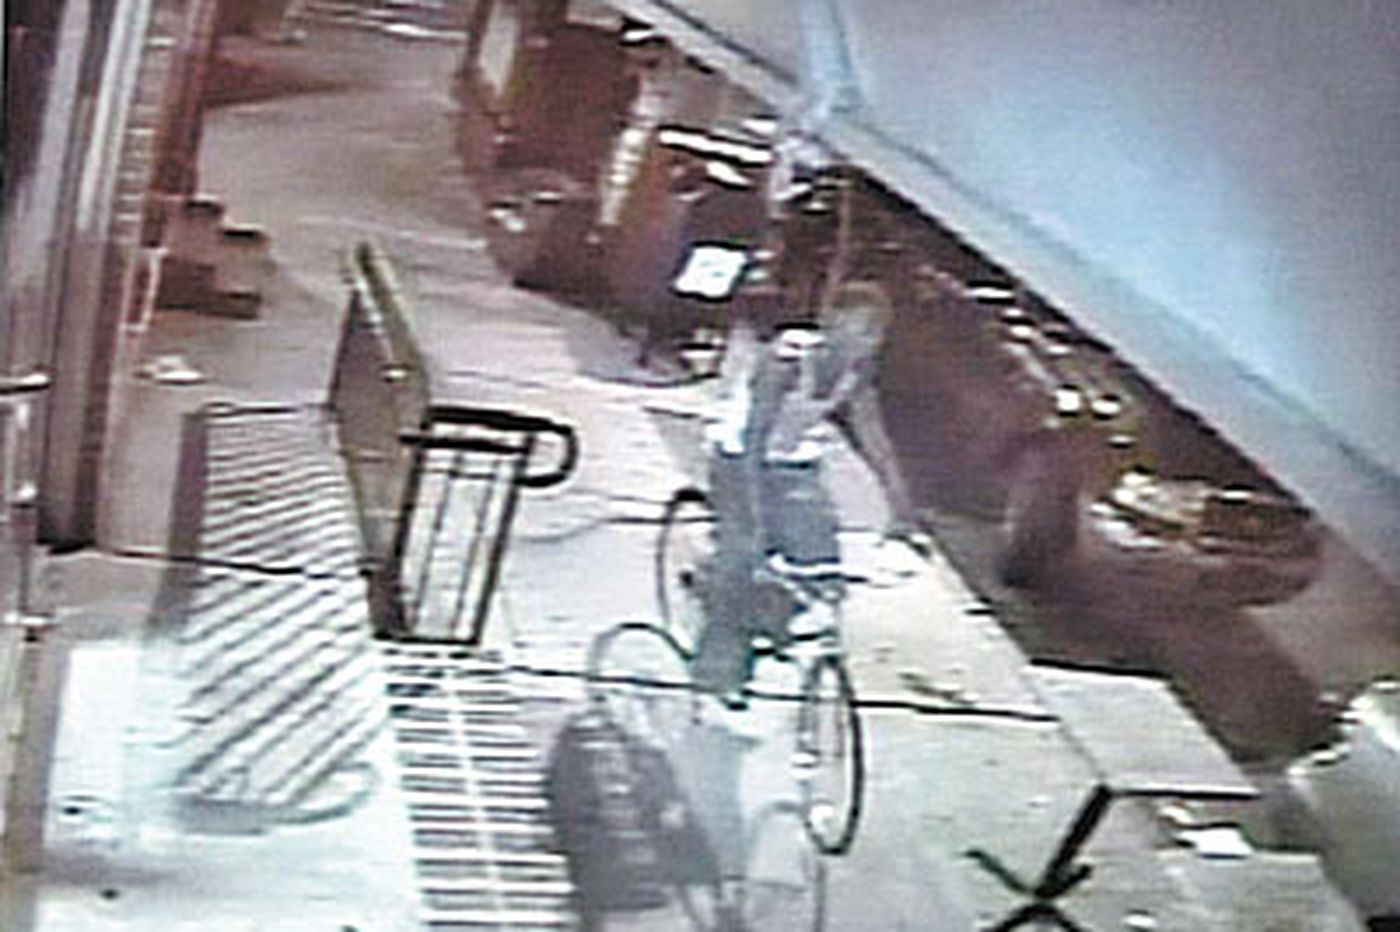 As crime witness, security camera can speak volumes